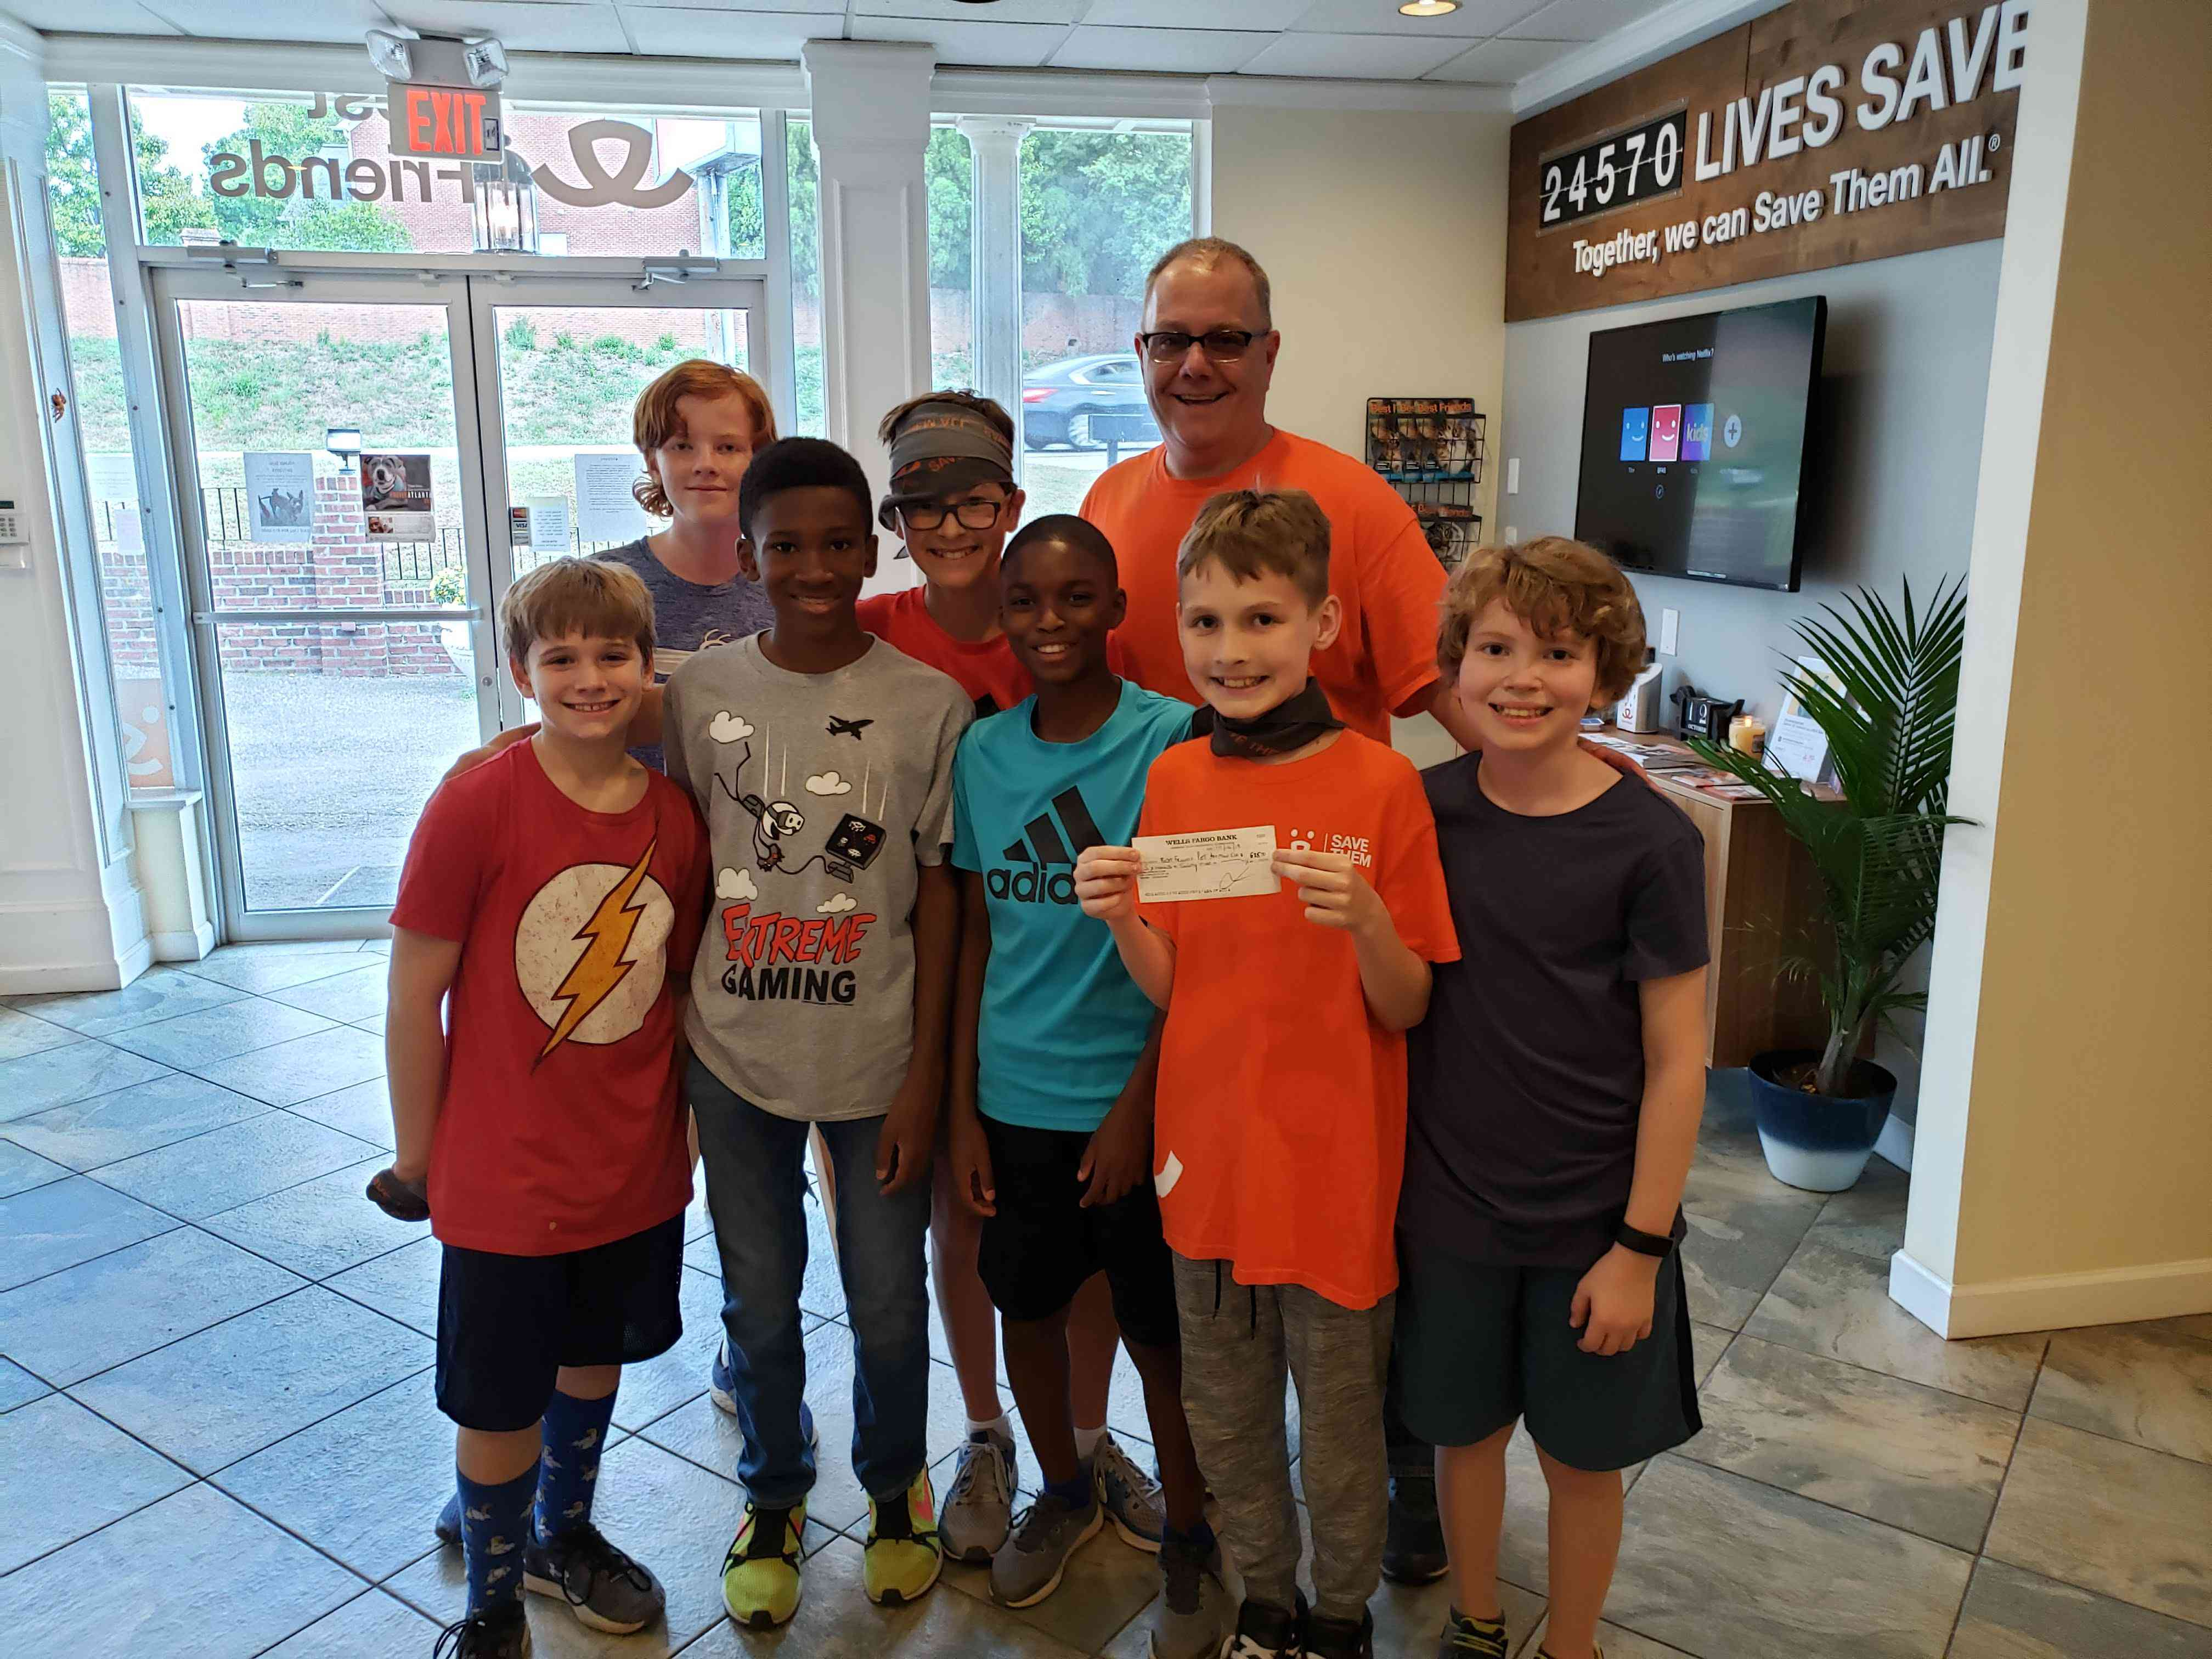 Jack and his friends present a $700 check to Best Friends.